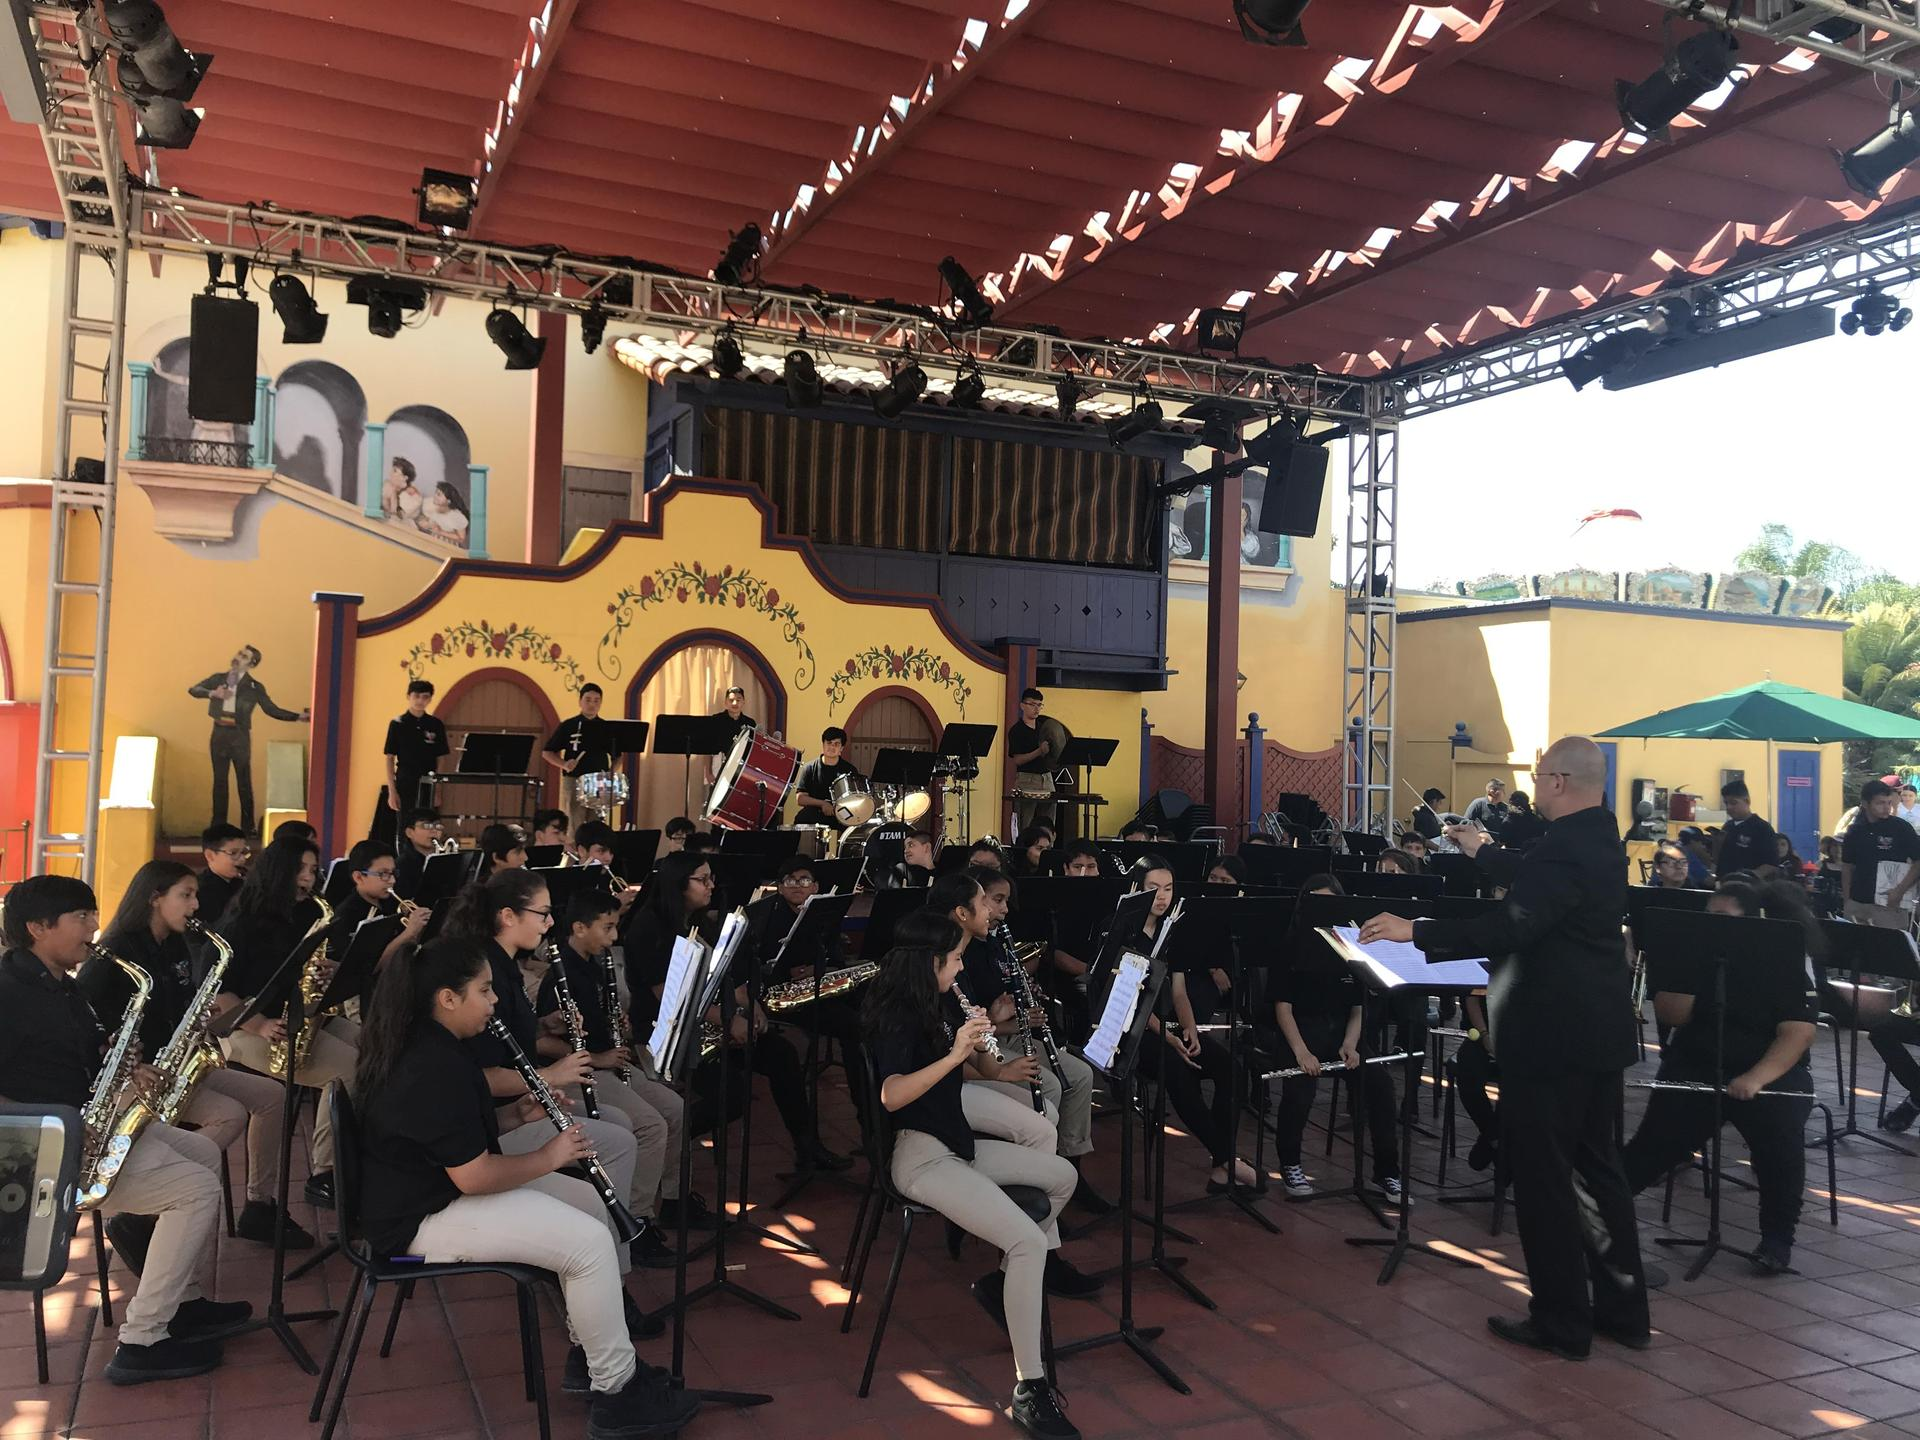 Concert Band performing @ Knott's Berry Farm 4/12/19